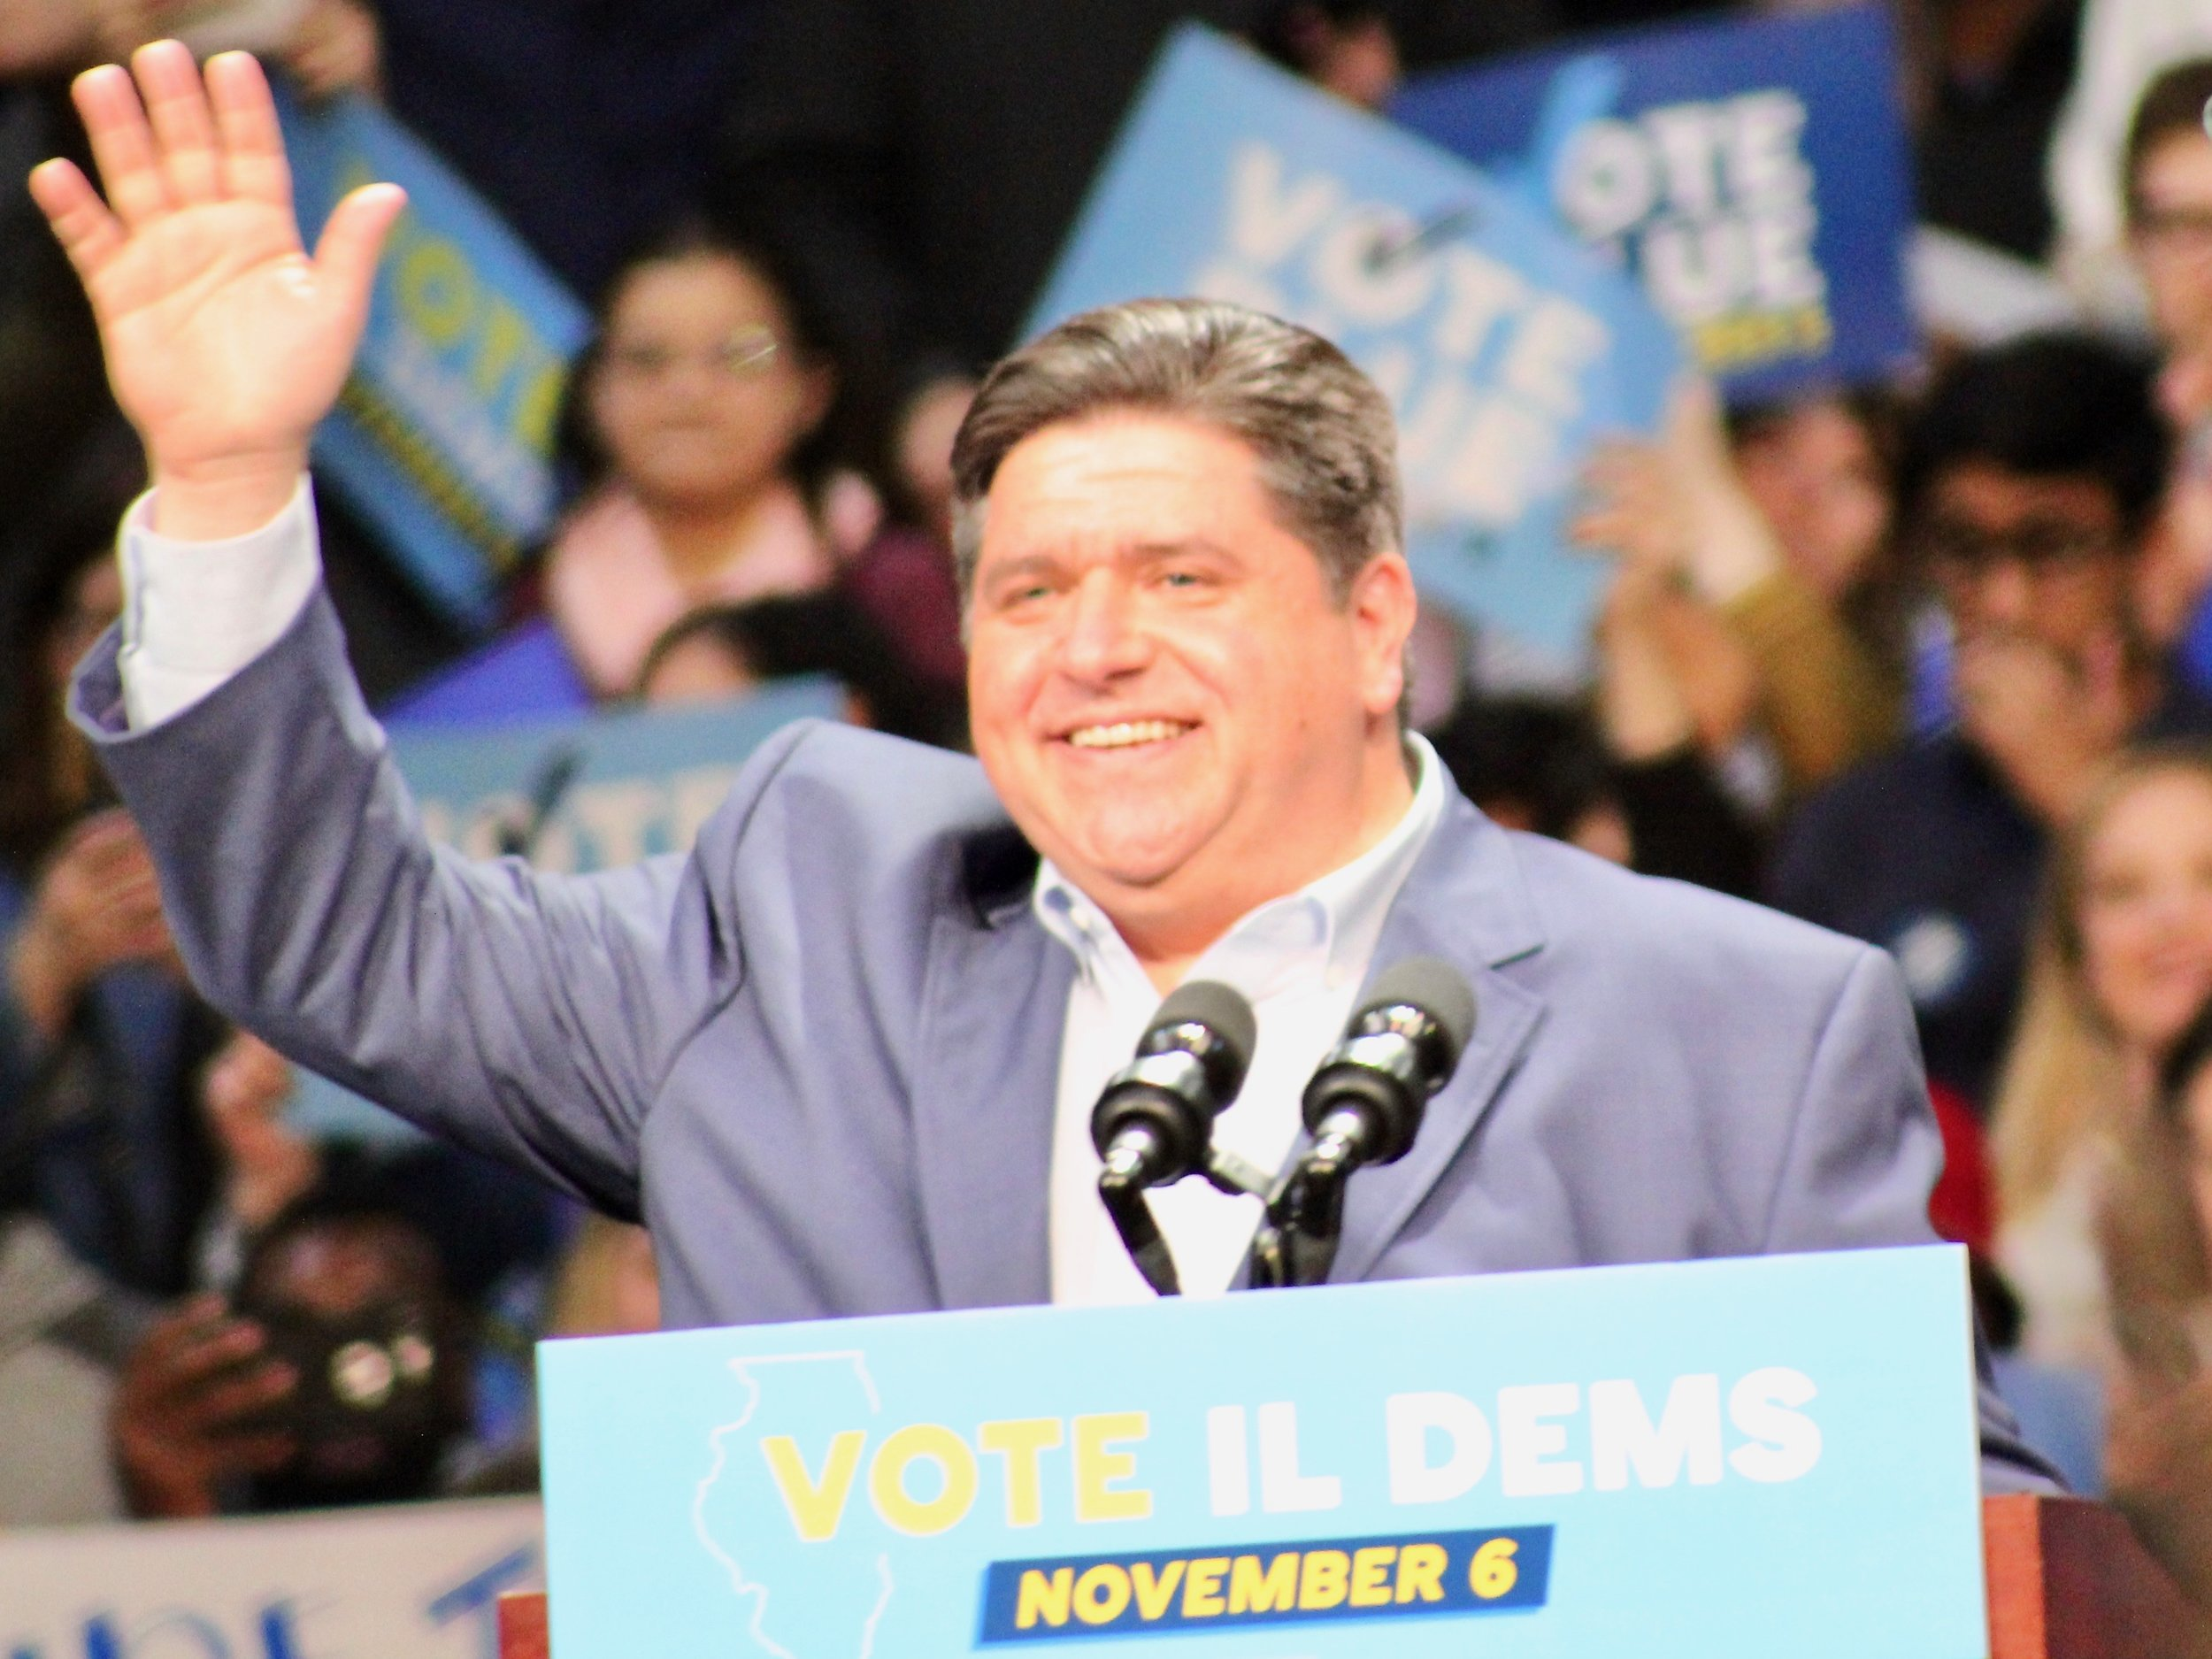 Gov.-elect J.B. Pritzker will join in the Dec. 3 celebration of the Illinois bicentennial. (One Illinois/Ted Cox)